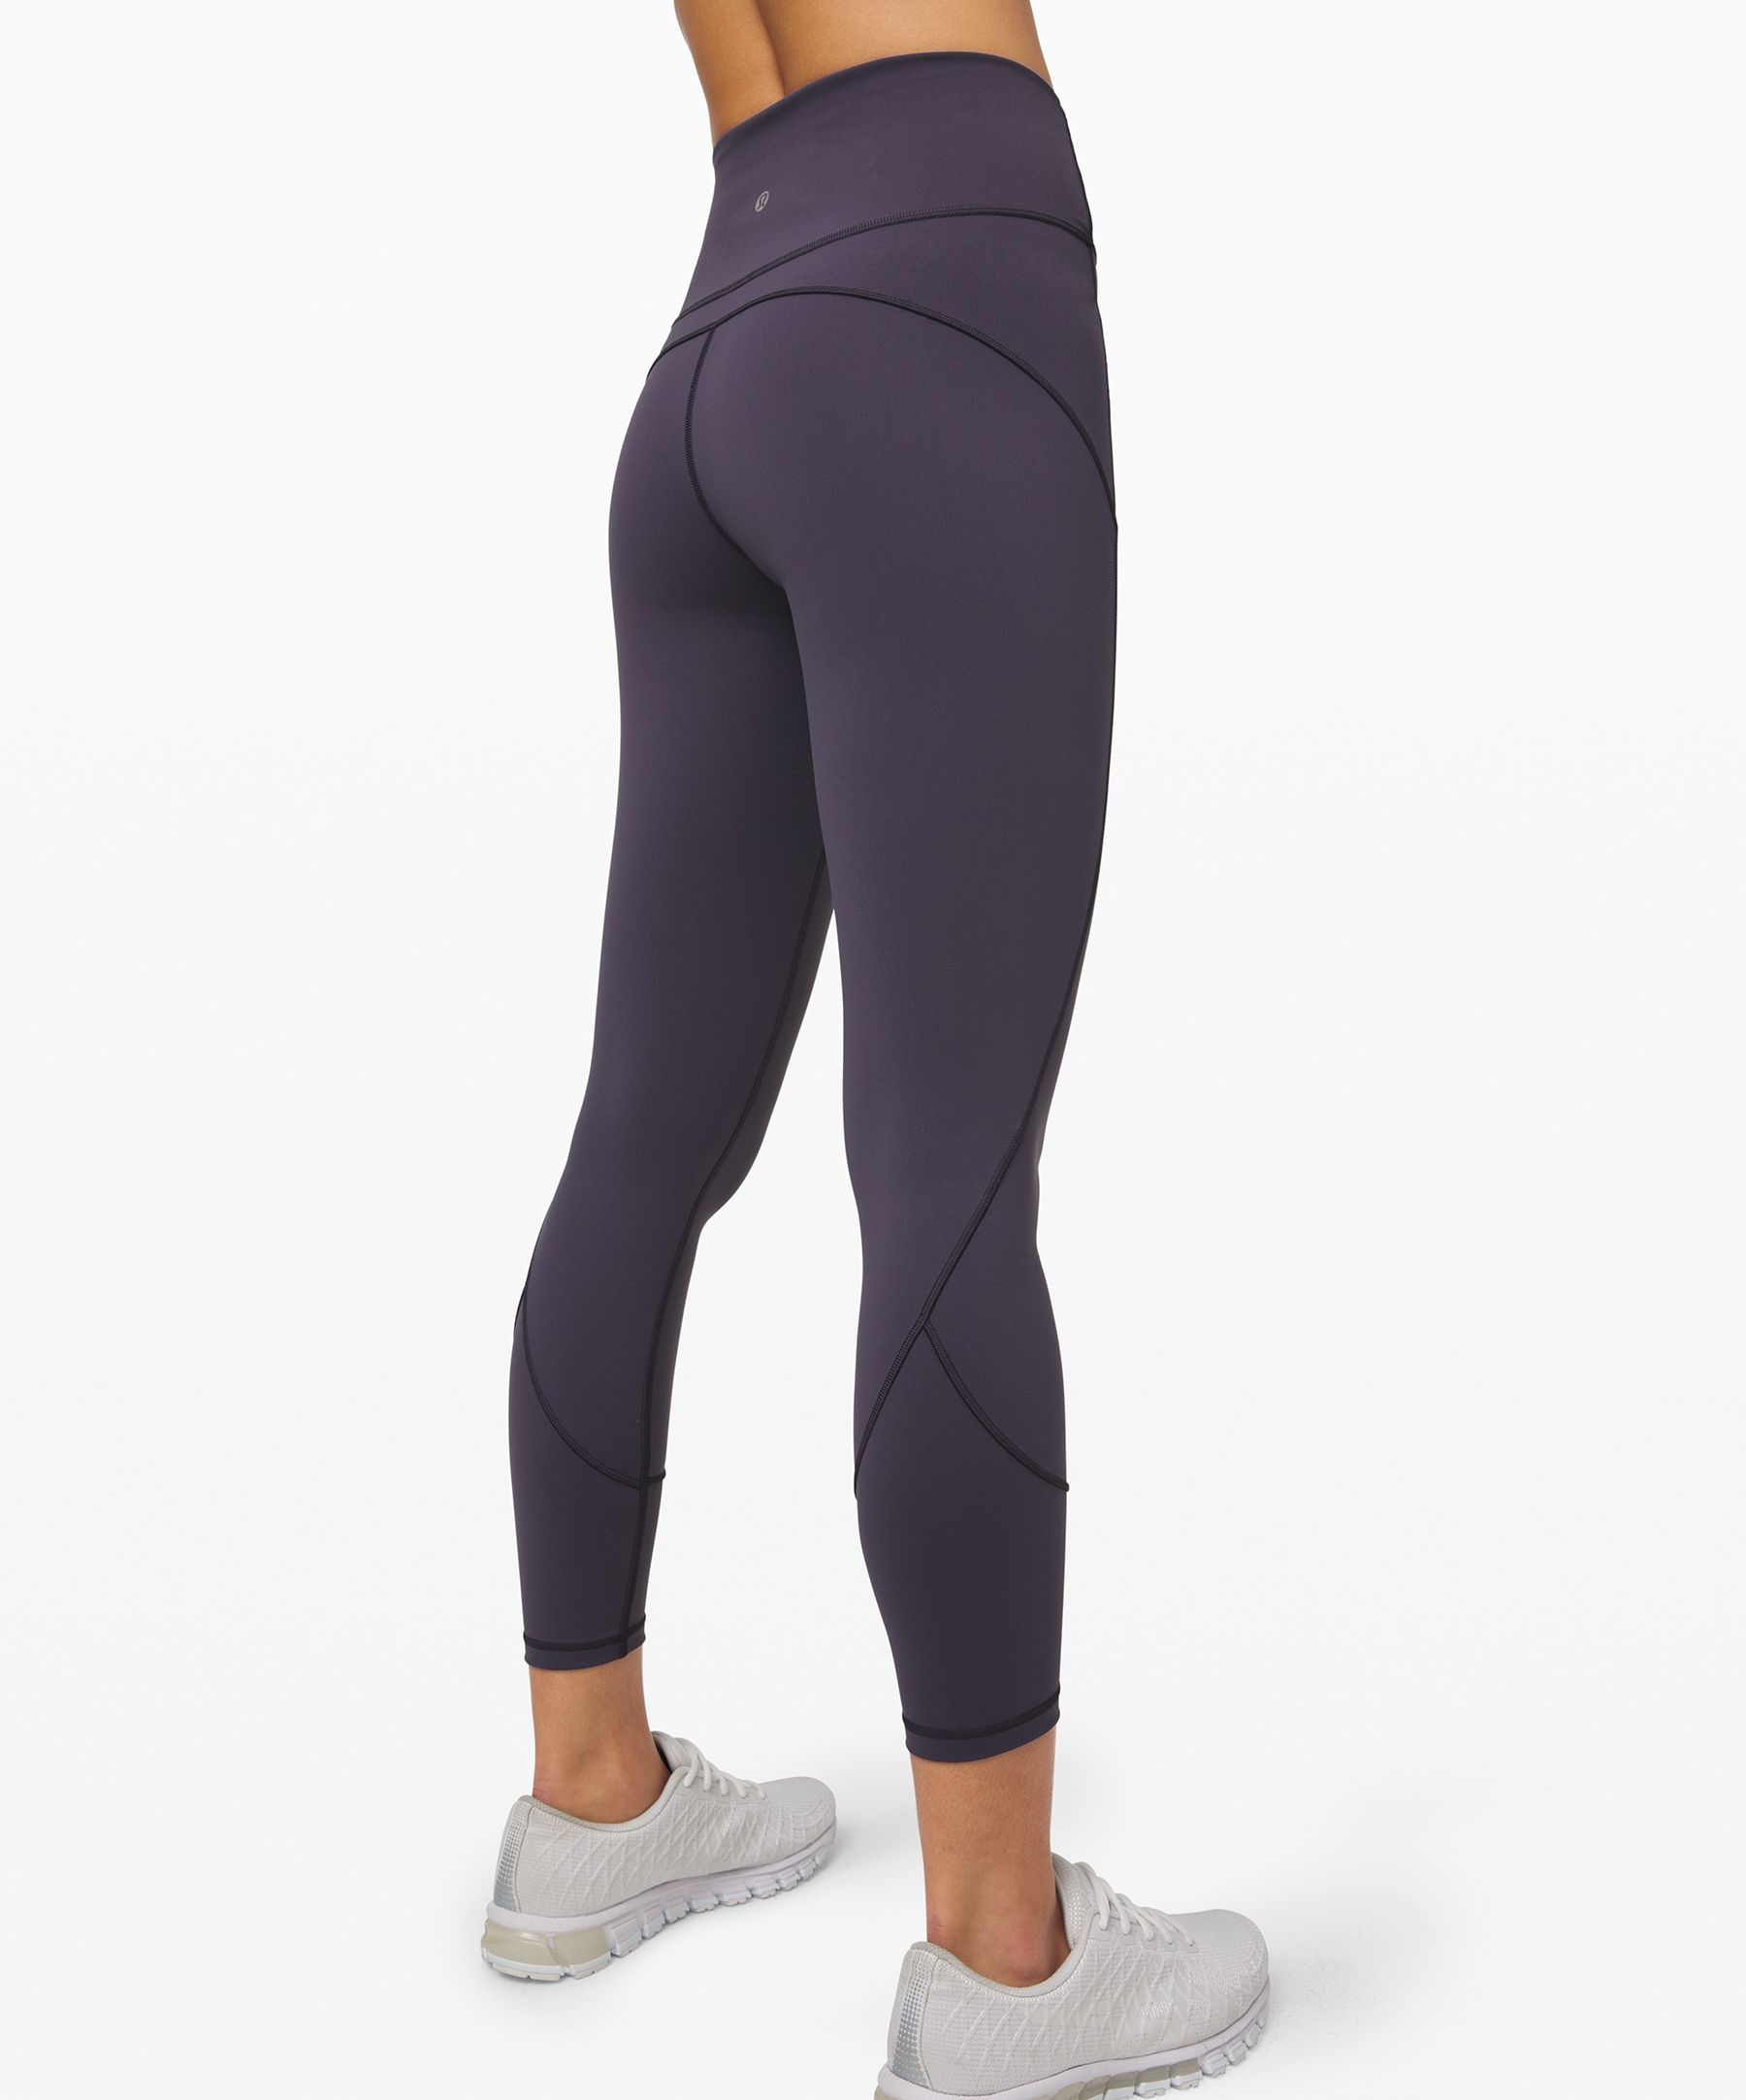 Lululemon Women S In Movement Legging 25 Everlux Moonwalk Size 10 Yoga Pants Lululemon Womens Printed Leggings Yoga Pants Women